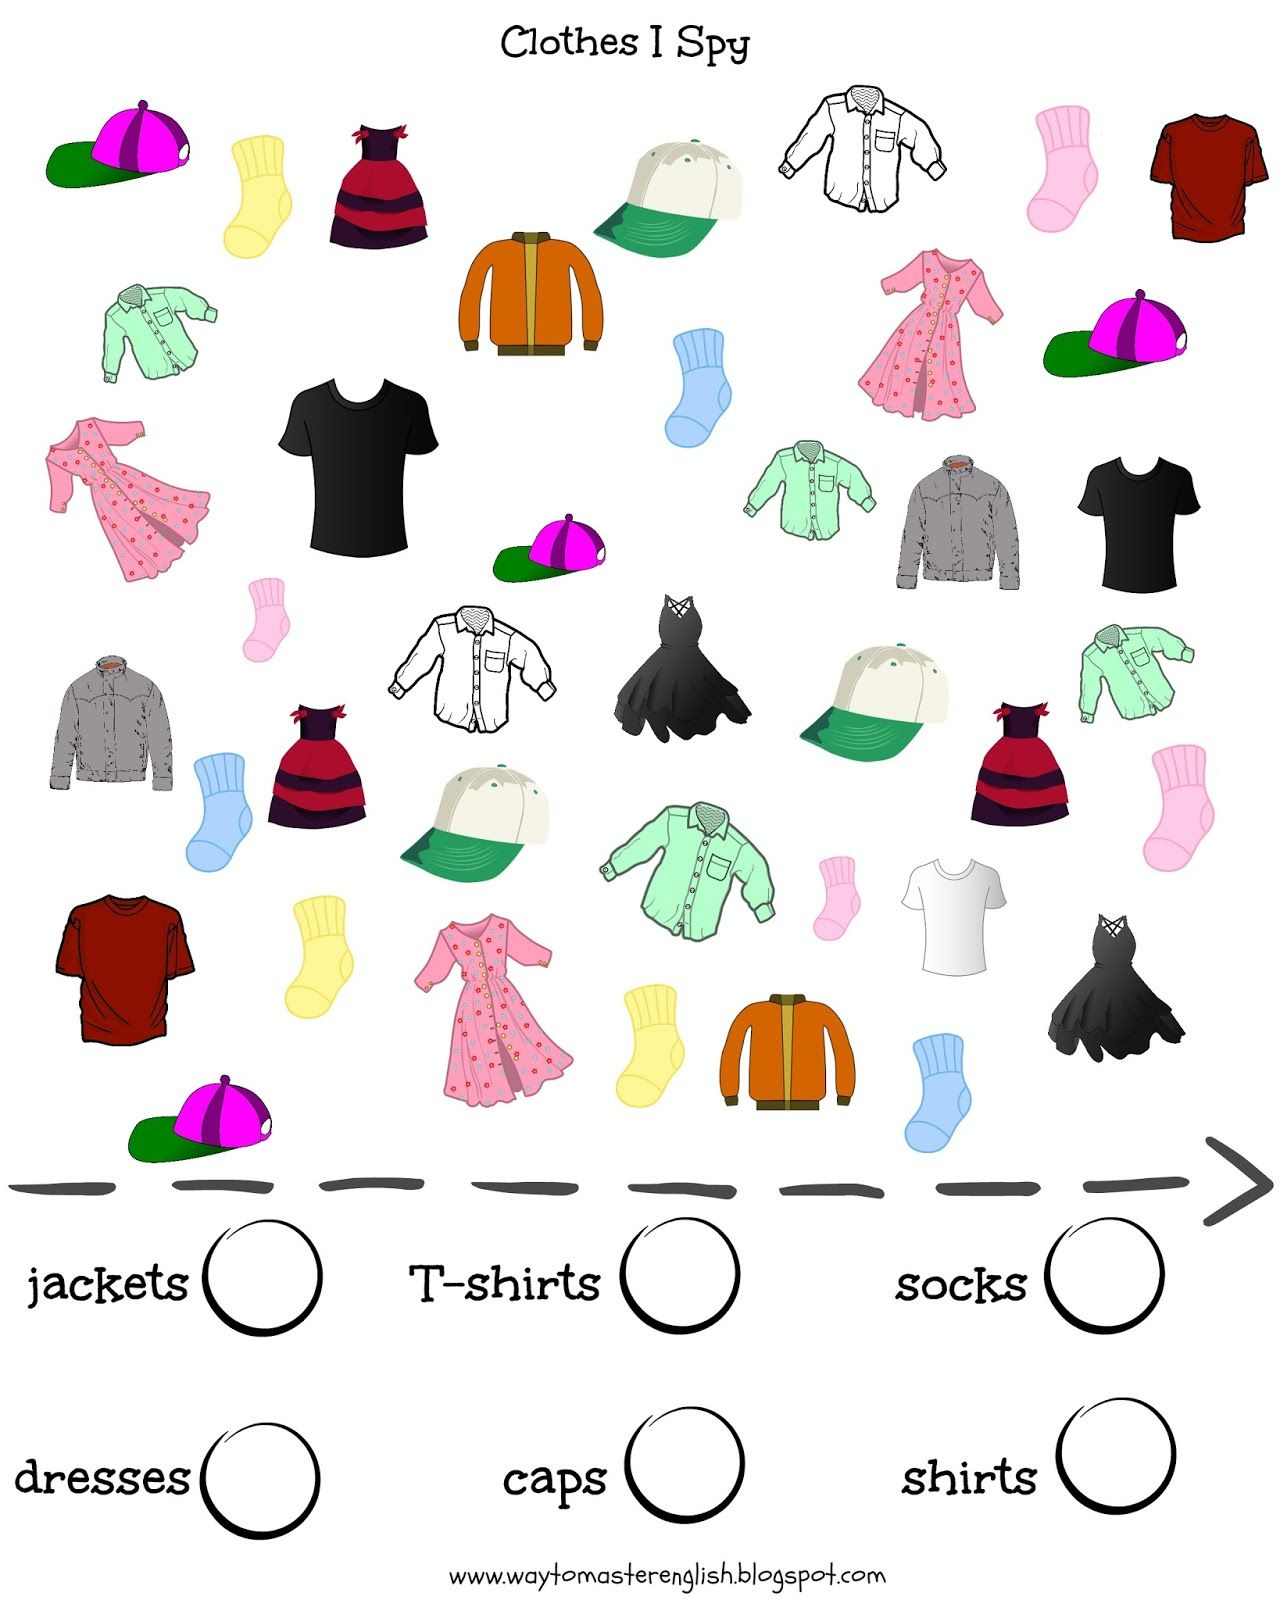 Vocabulary Clothes I Spy Kids Young Learners